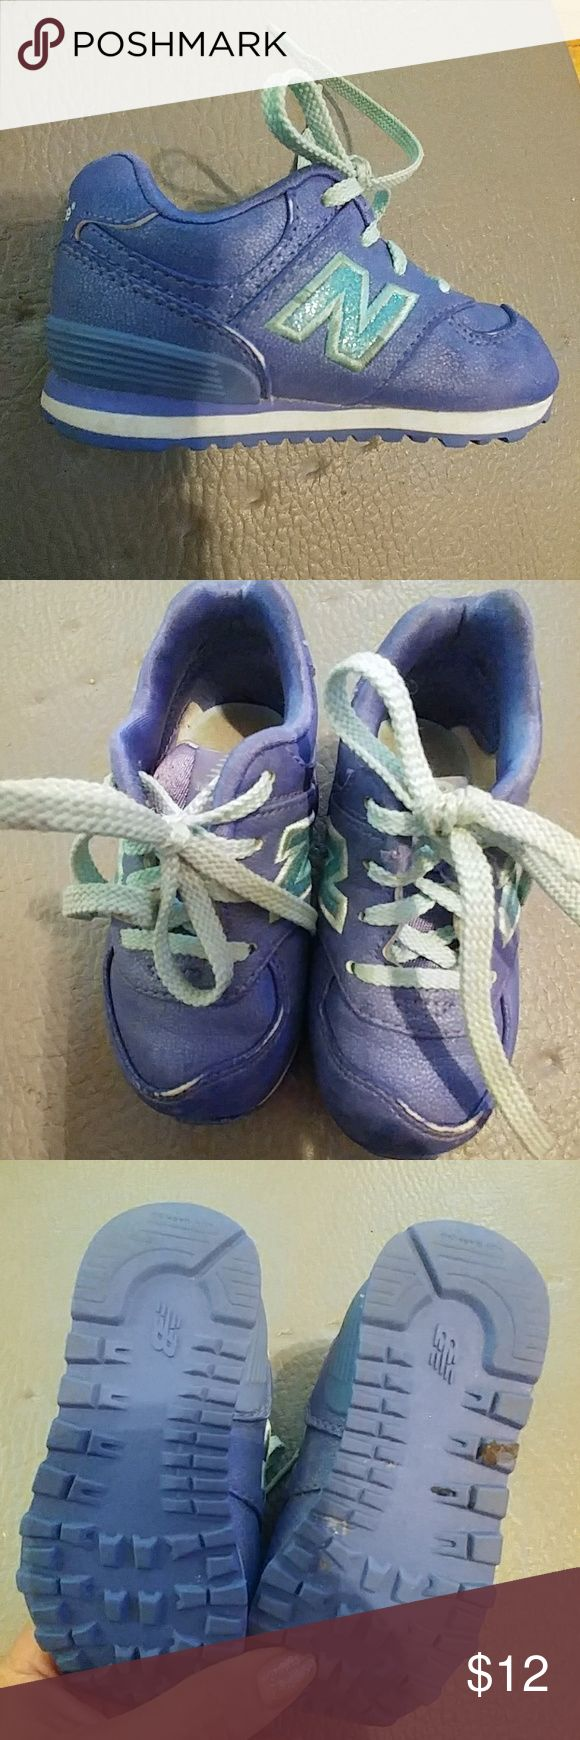 """Excellent New Balance 574 Size 6 lace-up sneakers Very much like new.  Just a little surface wear on front top part.  Wee bit of surface dirt inside. Glitter on """"N"""" New Balance Shoes Sneakers"""